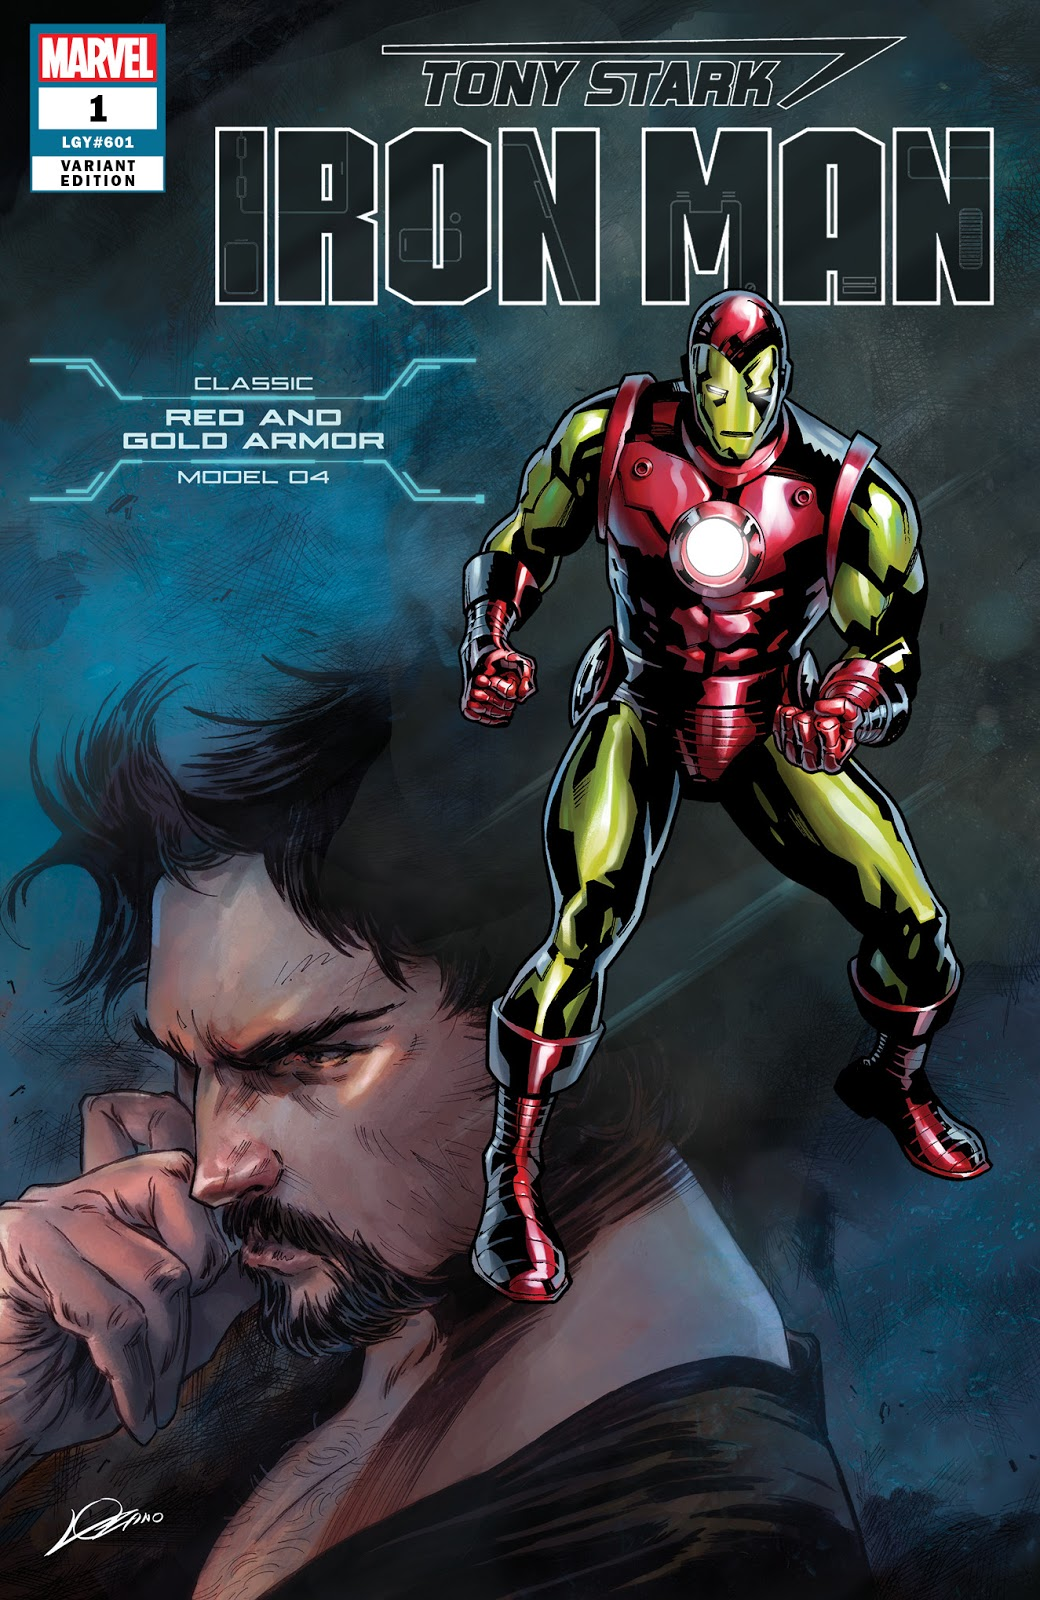 Tony Stark: Iron Man #1